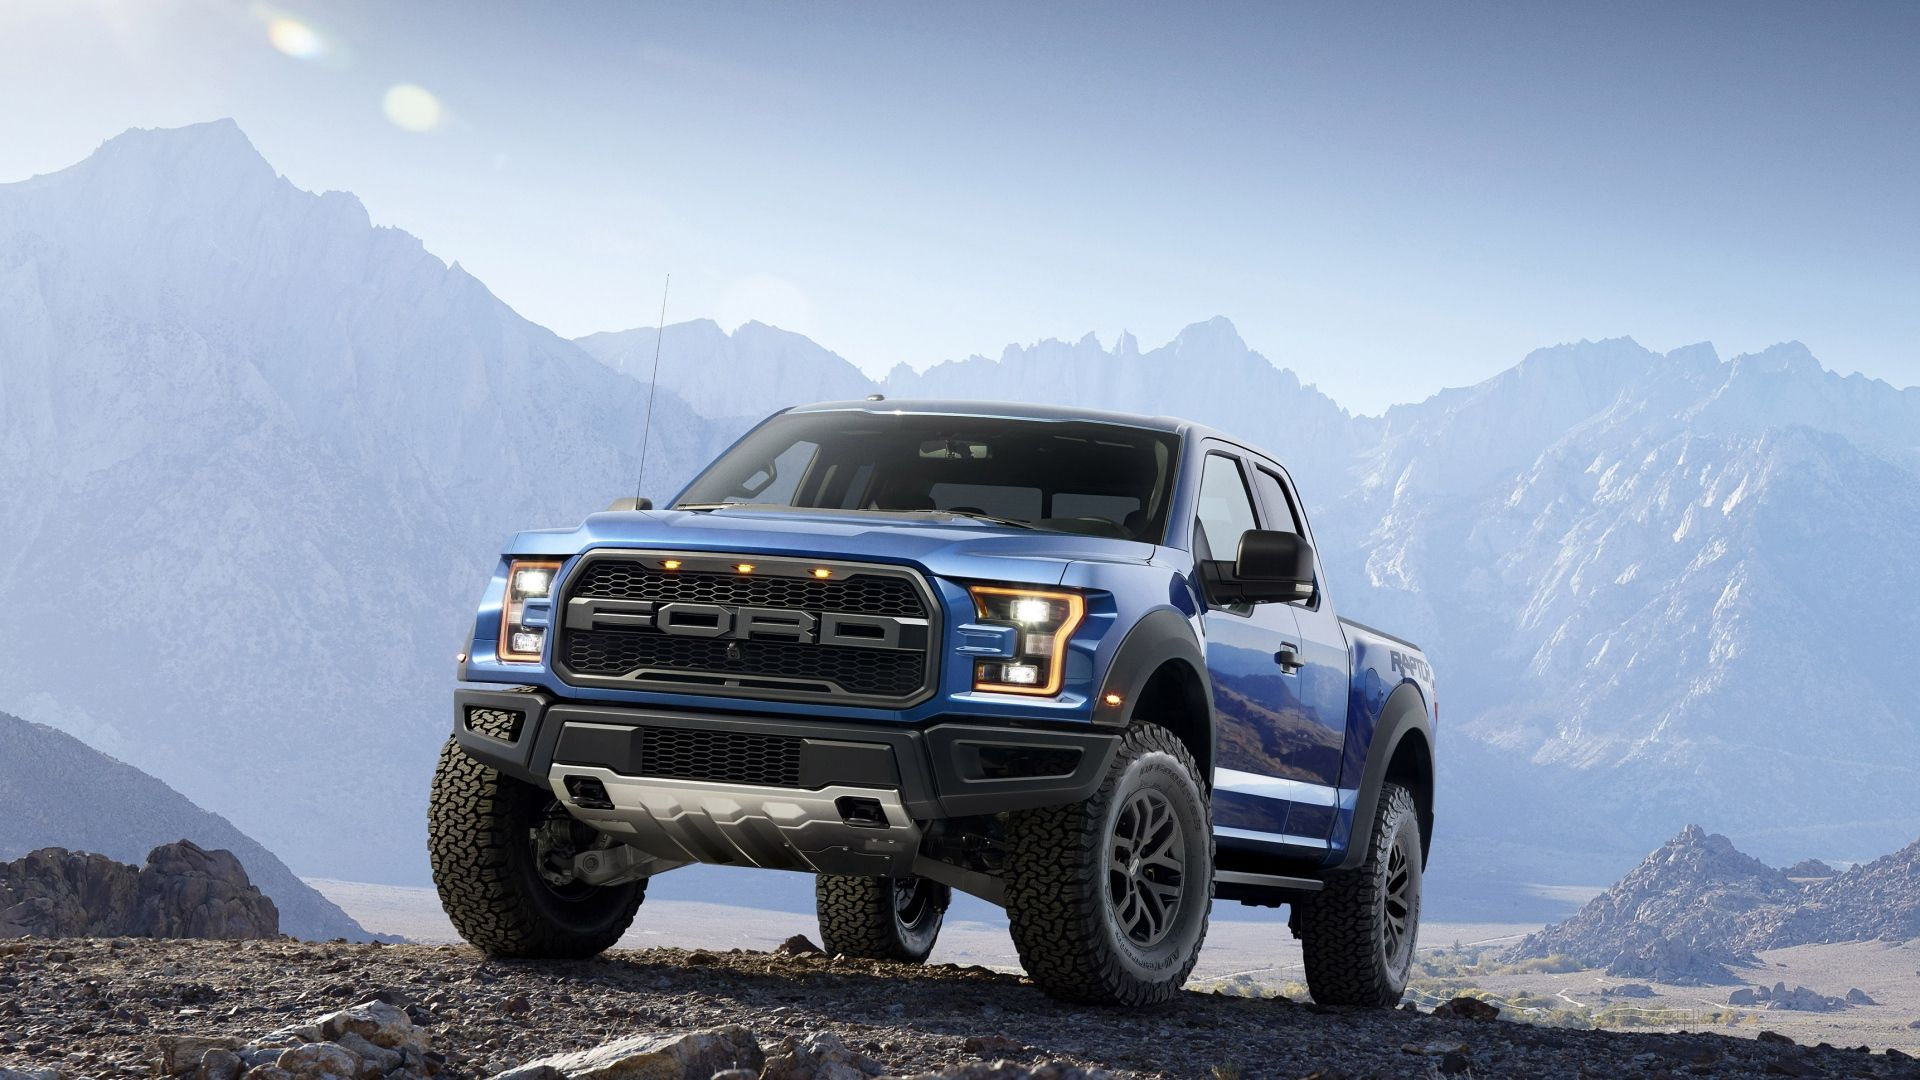 Ford Raptor 2017 Hd Wallpaper For Desktop Ford Raptor Ford